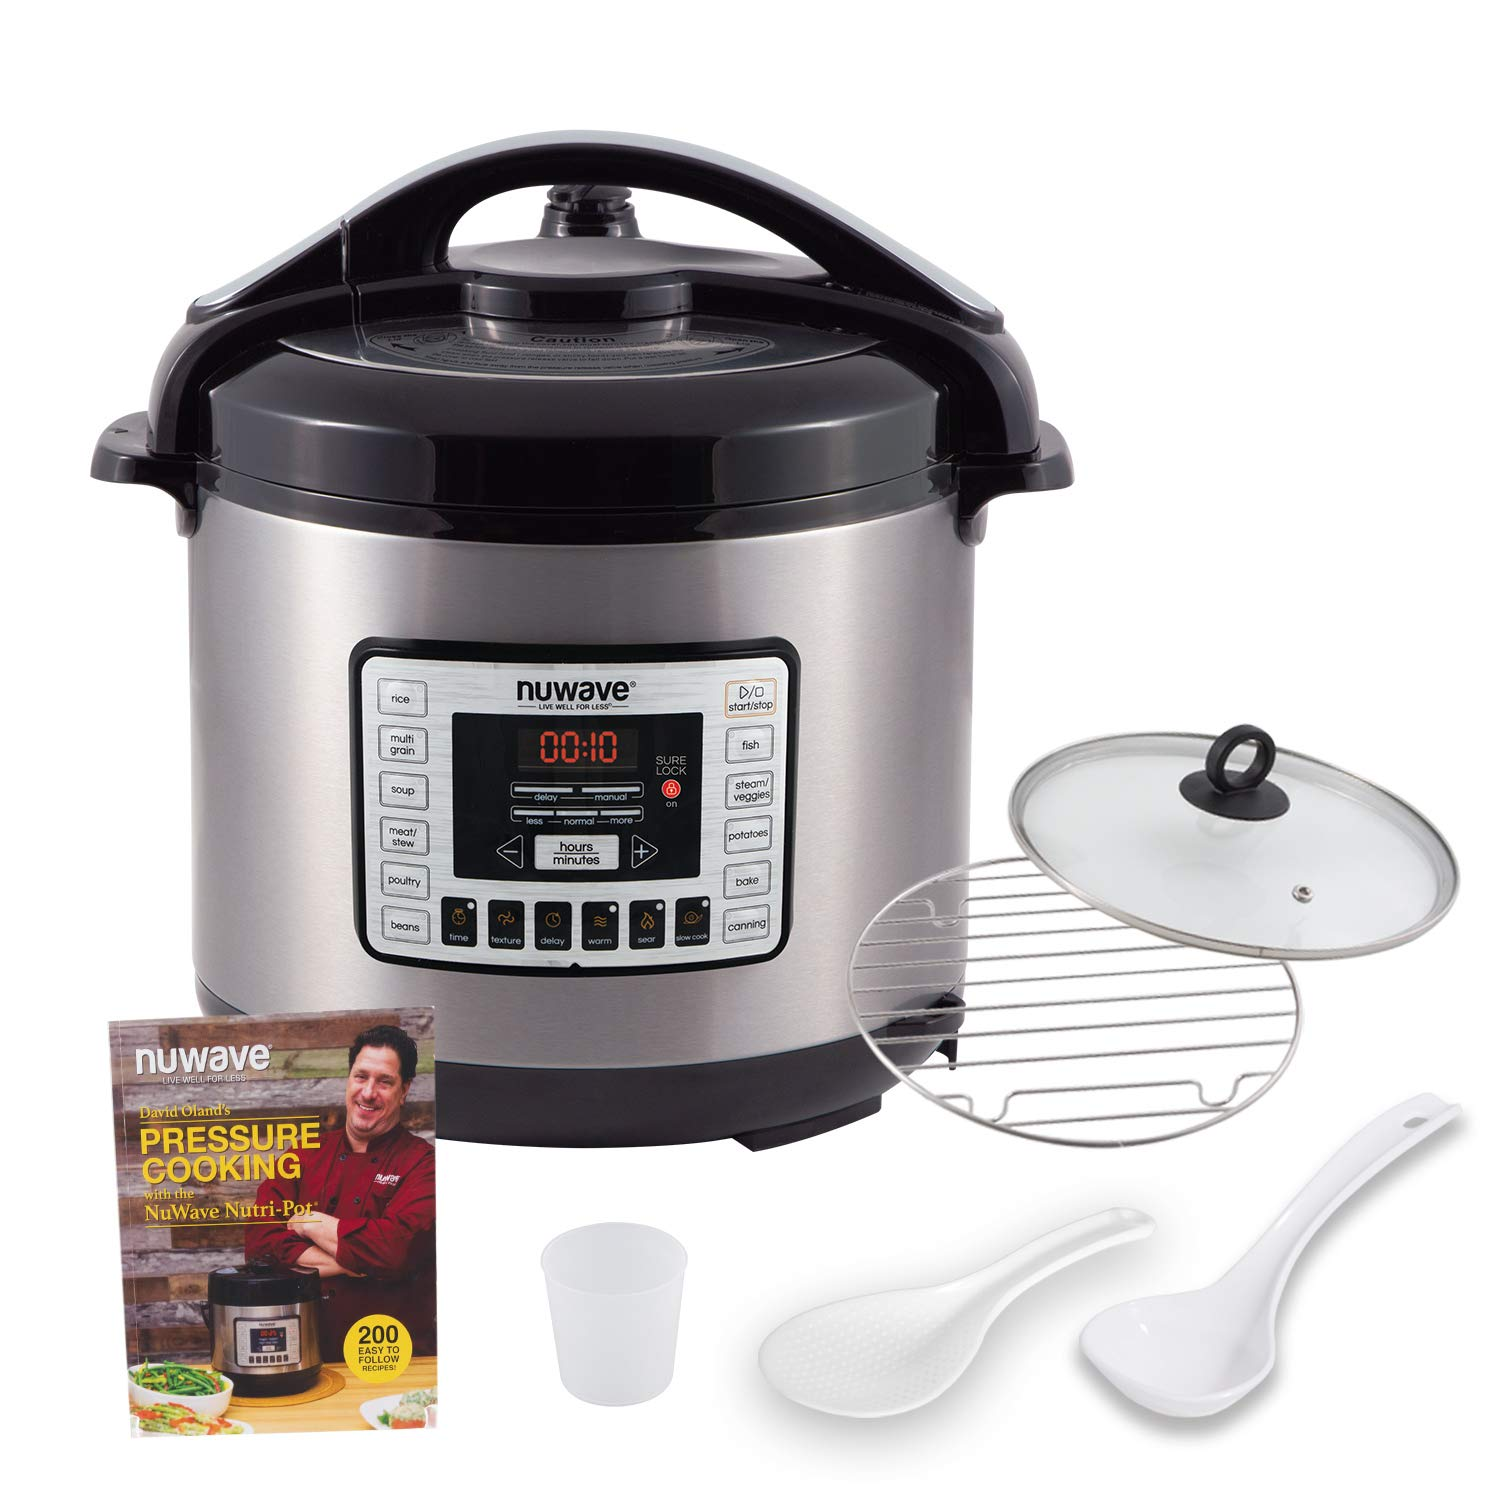 NUWAVE NUTRI-POT 8-Quart DIGITAL PRESSURE COOKER with Sure-Lock Safety System; Dishwasher-Safe Non-Stick Inner Pot; Glass Lid for Slow Cooking; Cooking Rack, 11 Pre-Programmed Presets; Detachable Pressure Pot Lid for Easy Cleaning; and Chef Tested 200 Recipe Pressure Cooking Cookbook. (8-Quart)